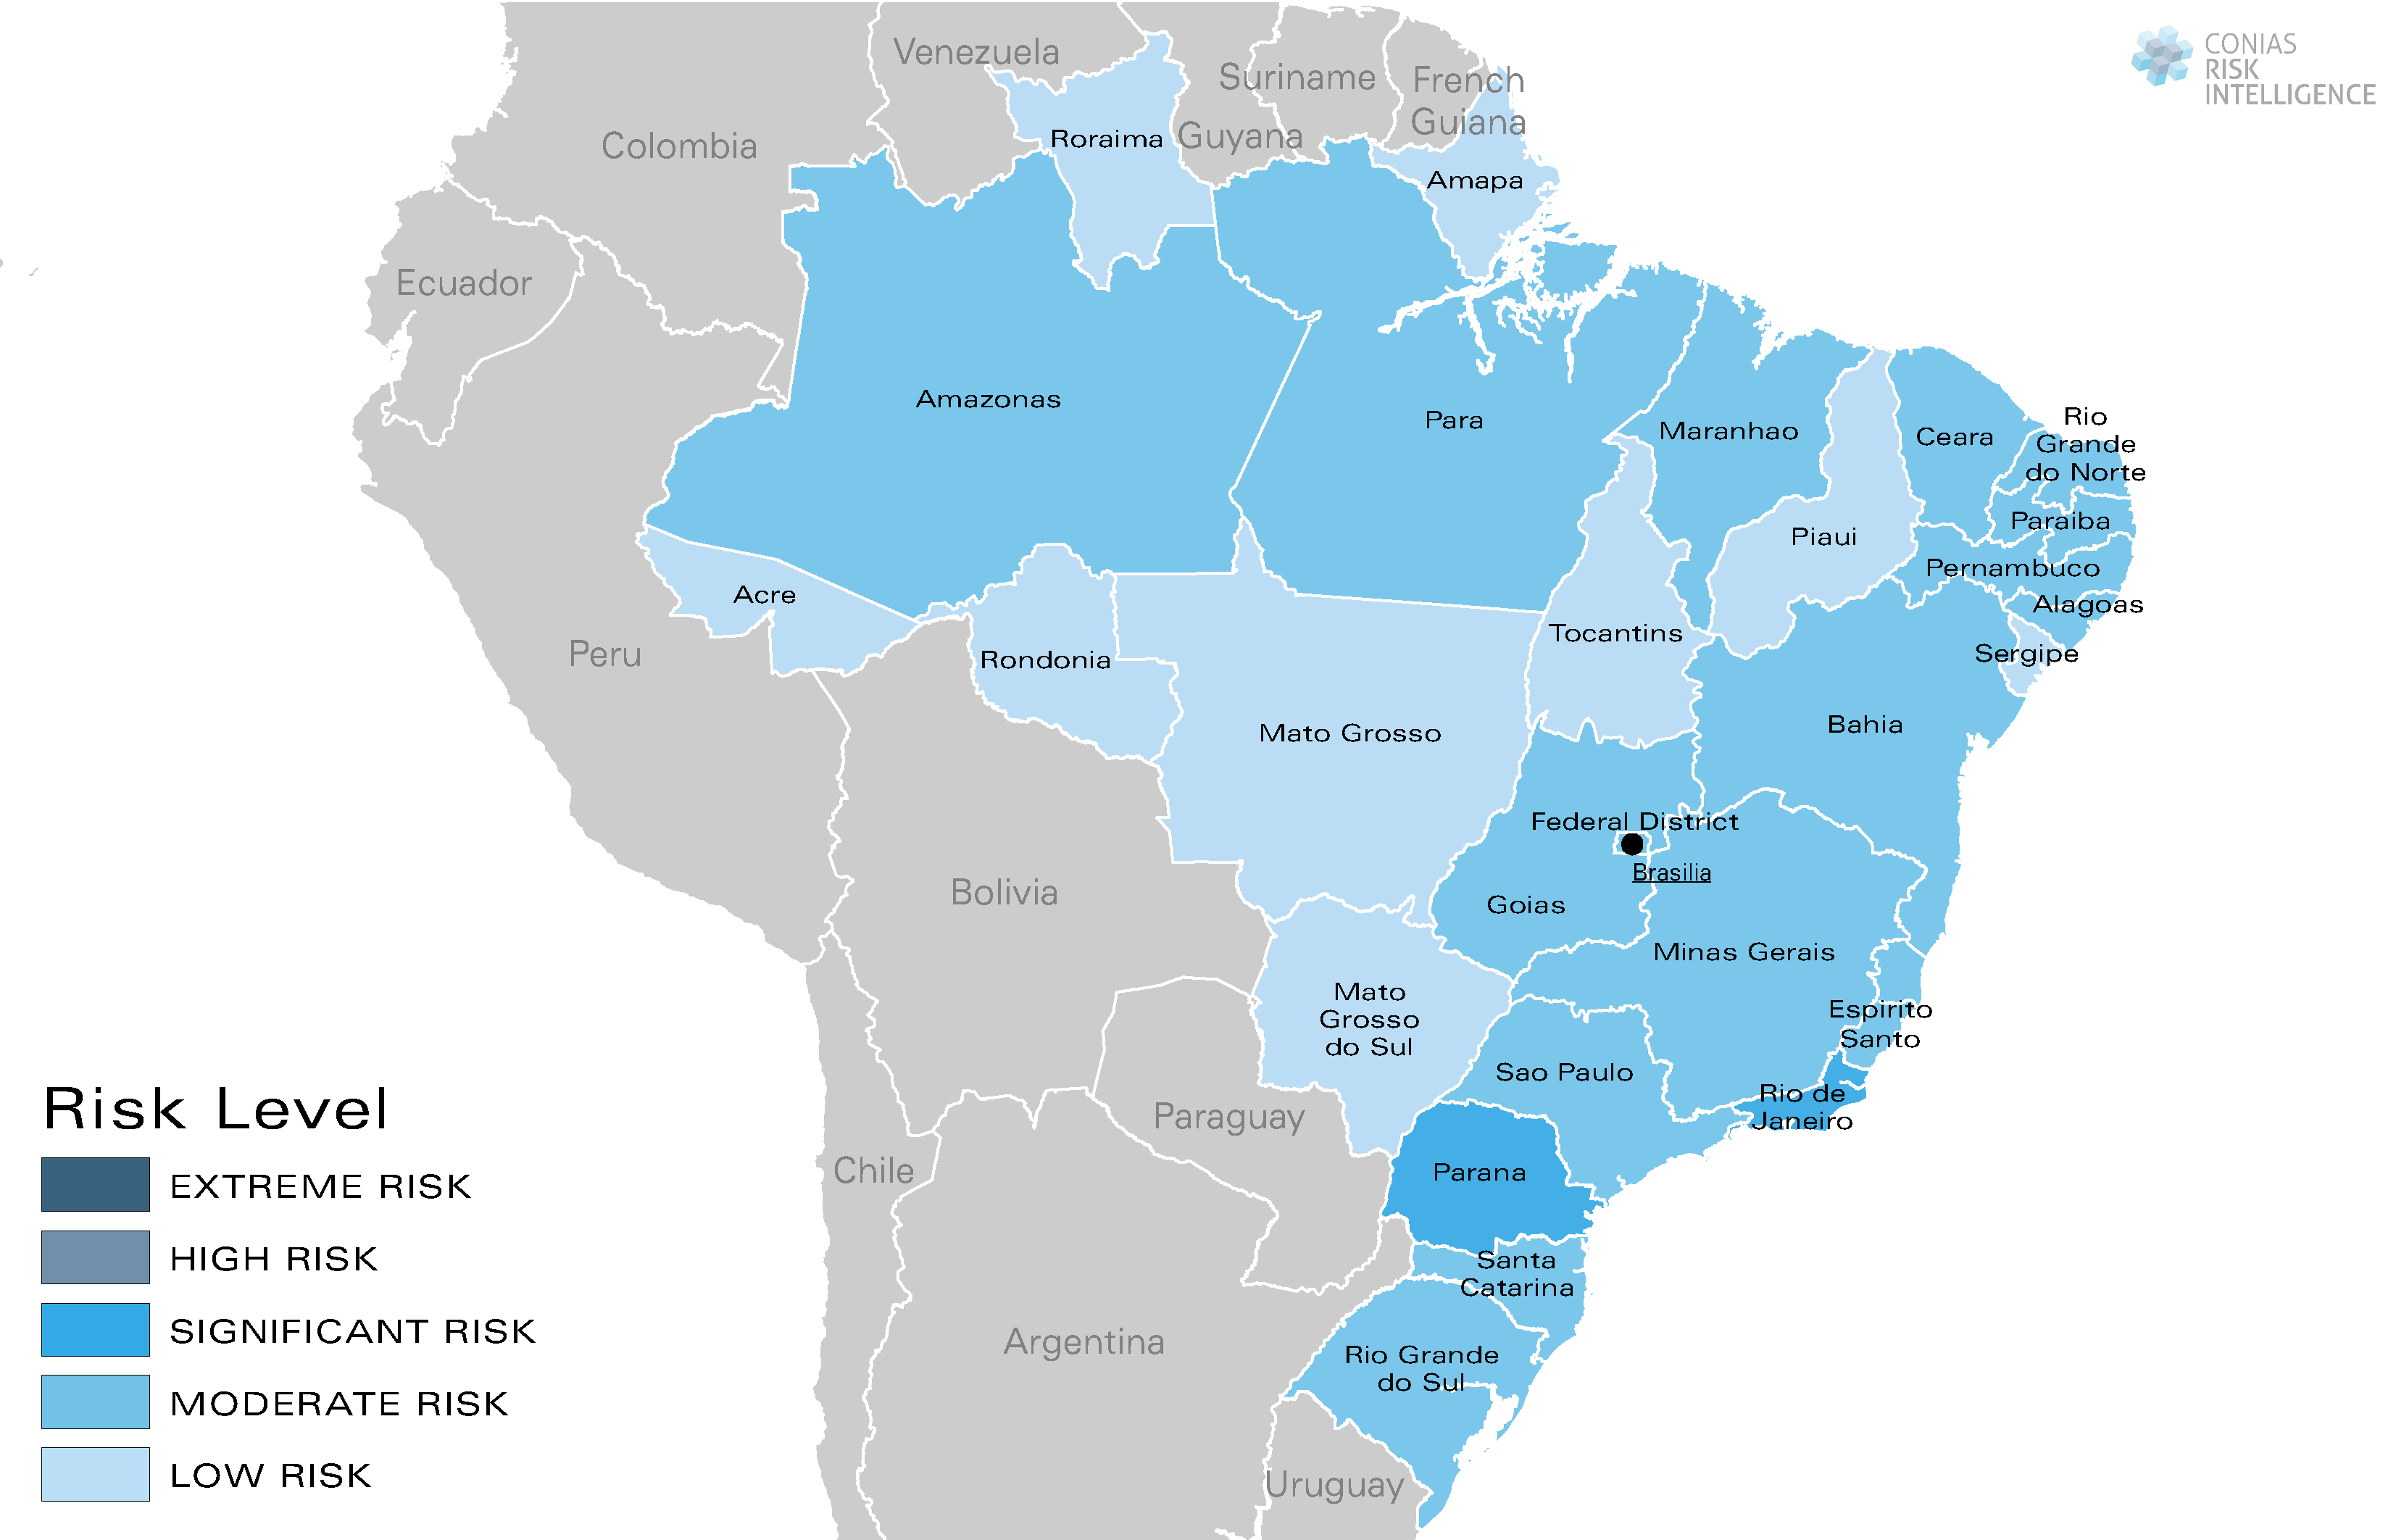 CONIAS Political Risk Maps Brasilien